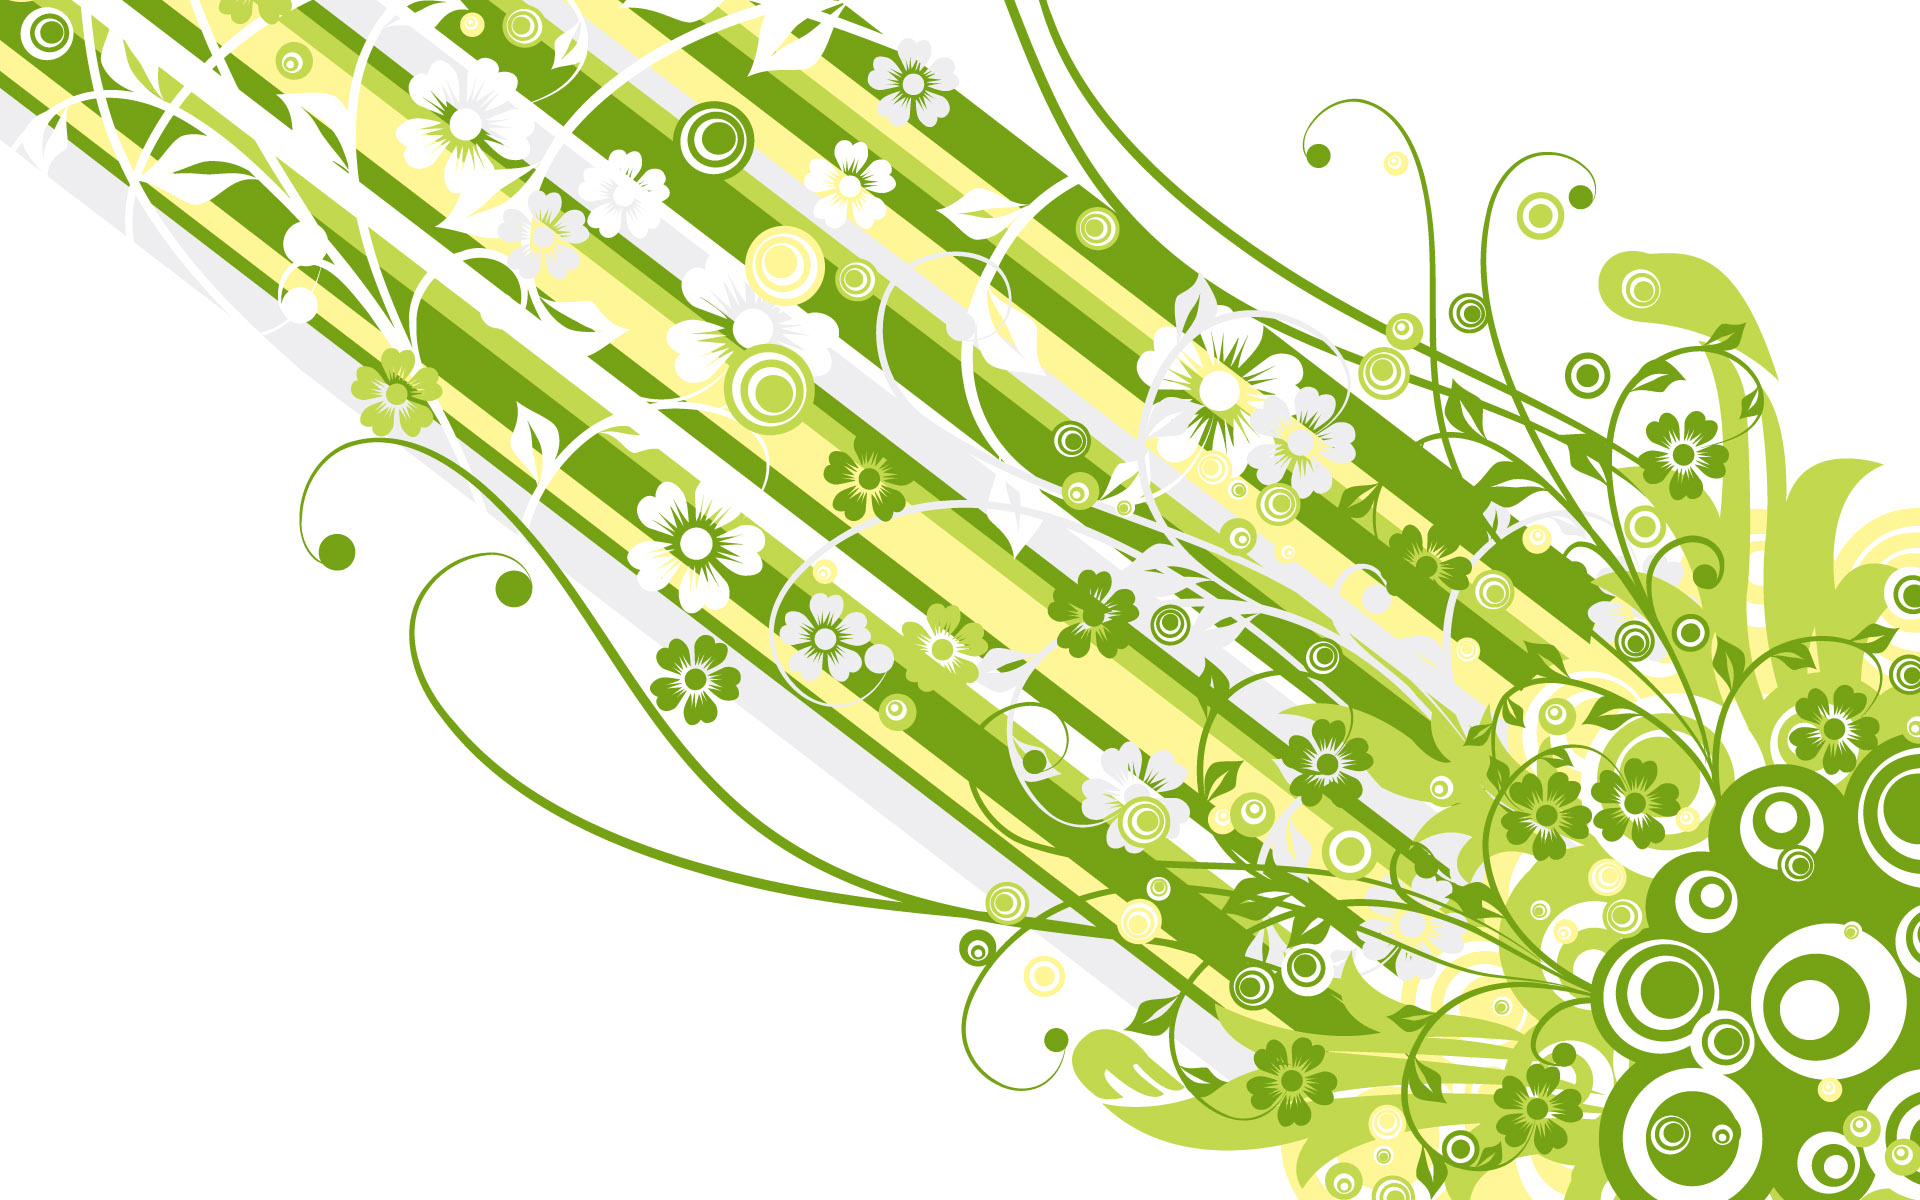 Green Vector Design Wallpapers HD Wallpapers 1920x1200